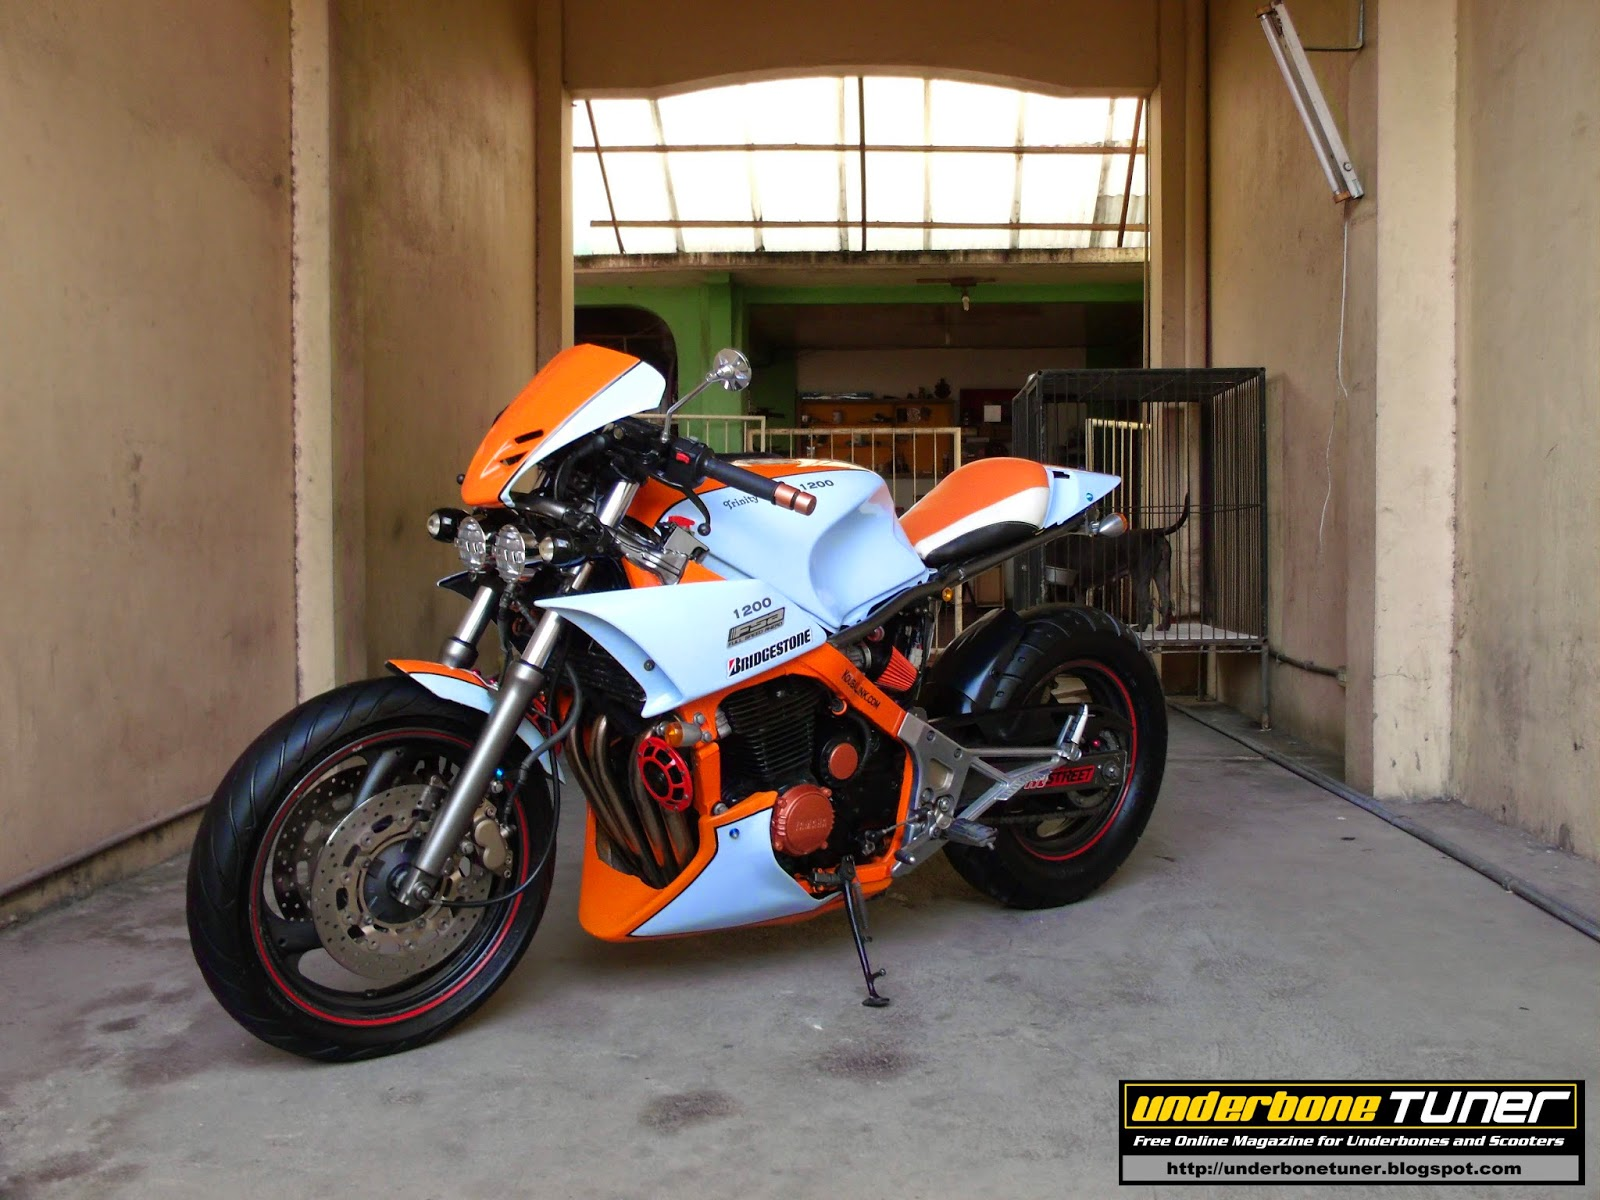 underbone tuner: The Yamaha FJ1200 Street fighter by Trinity Customs Werx